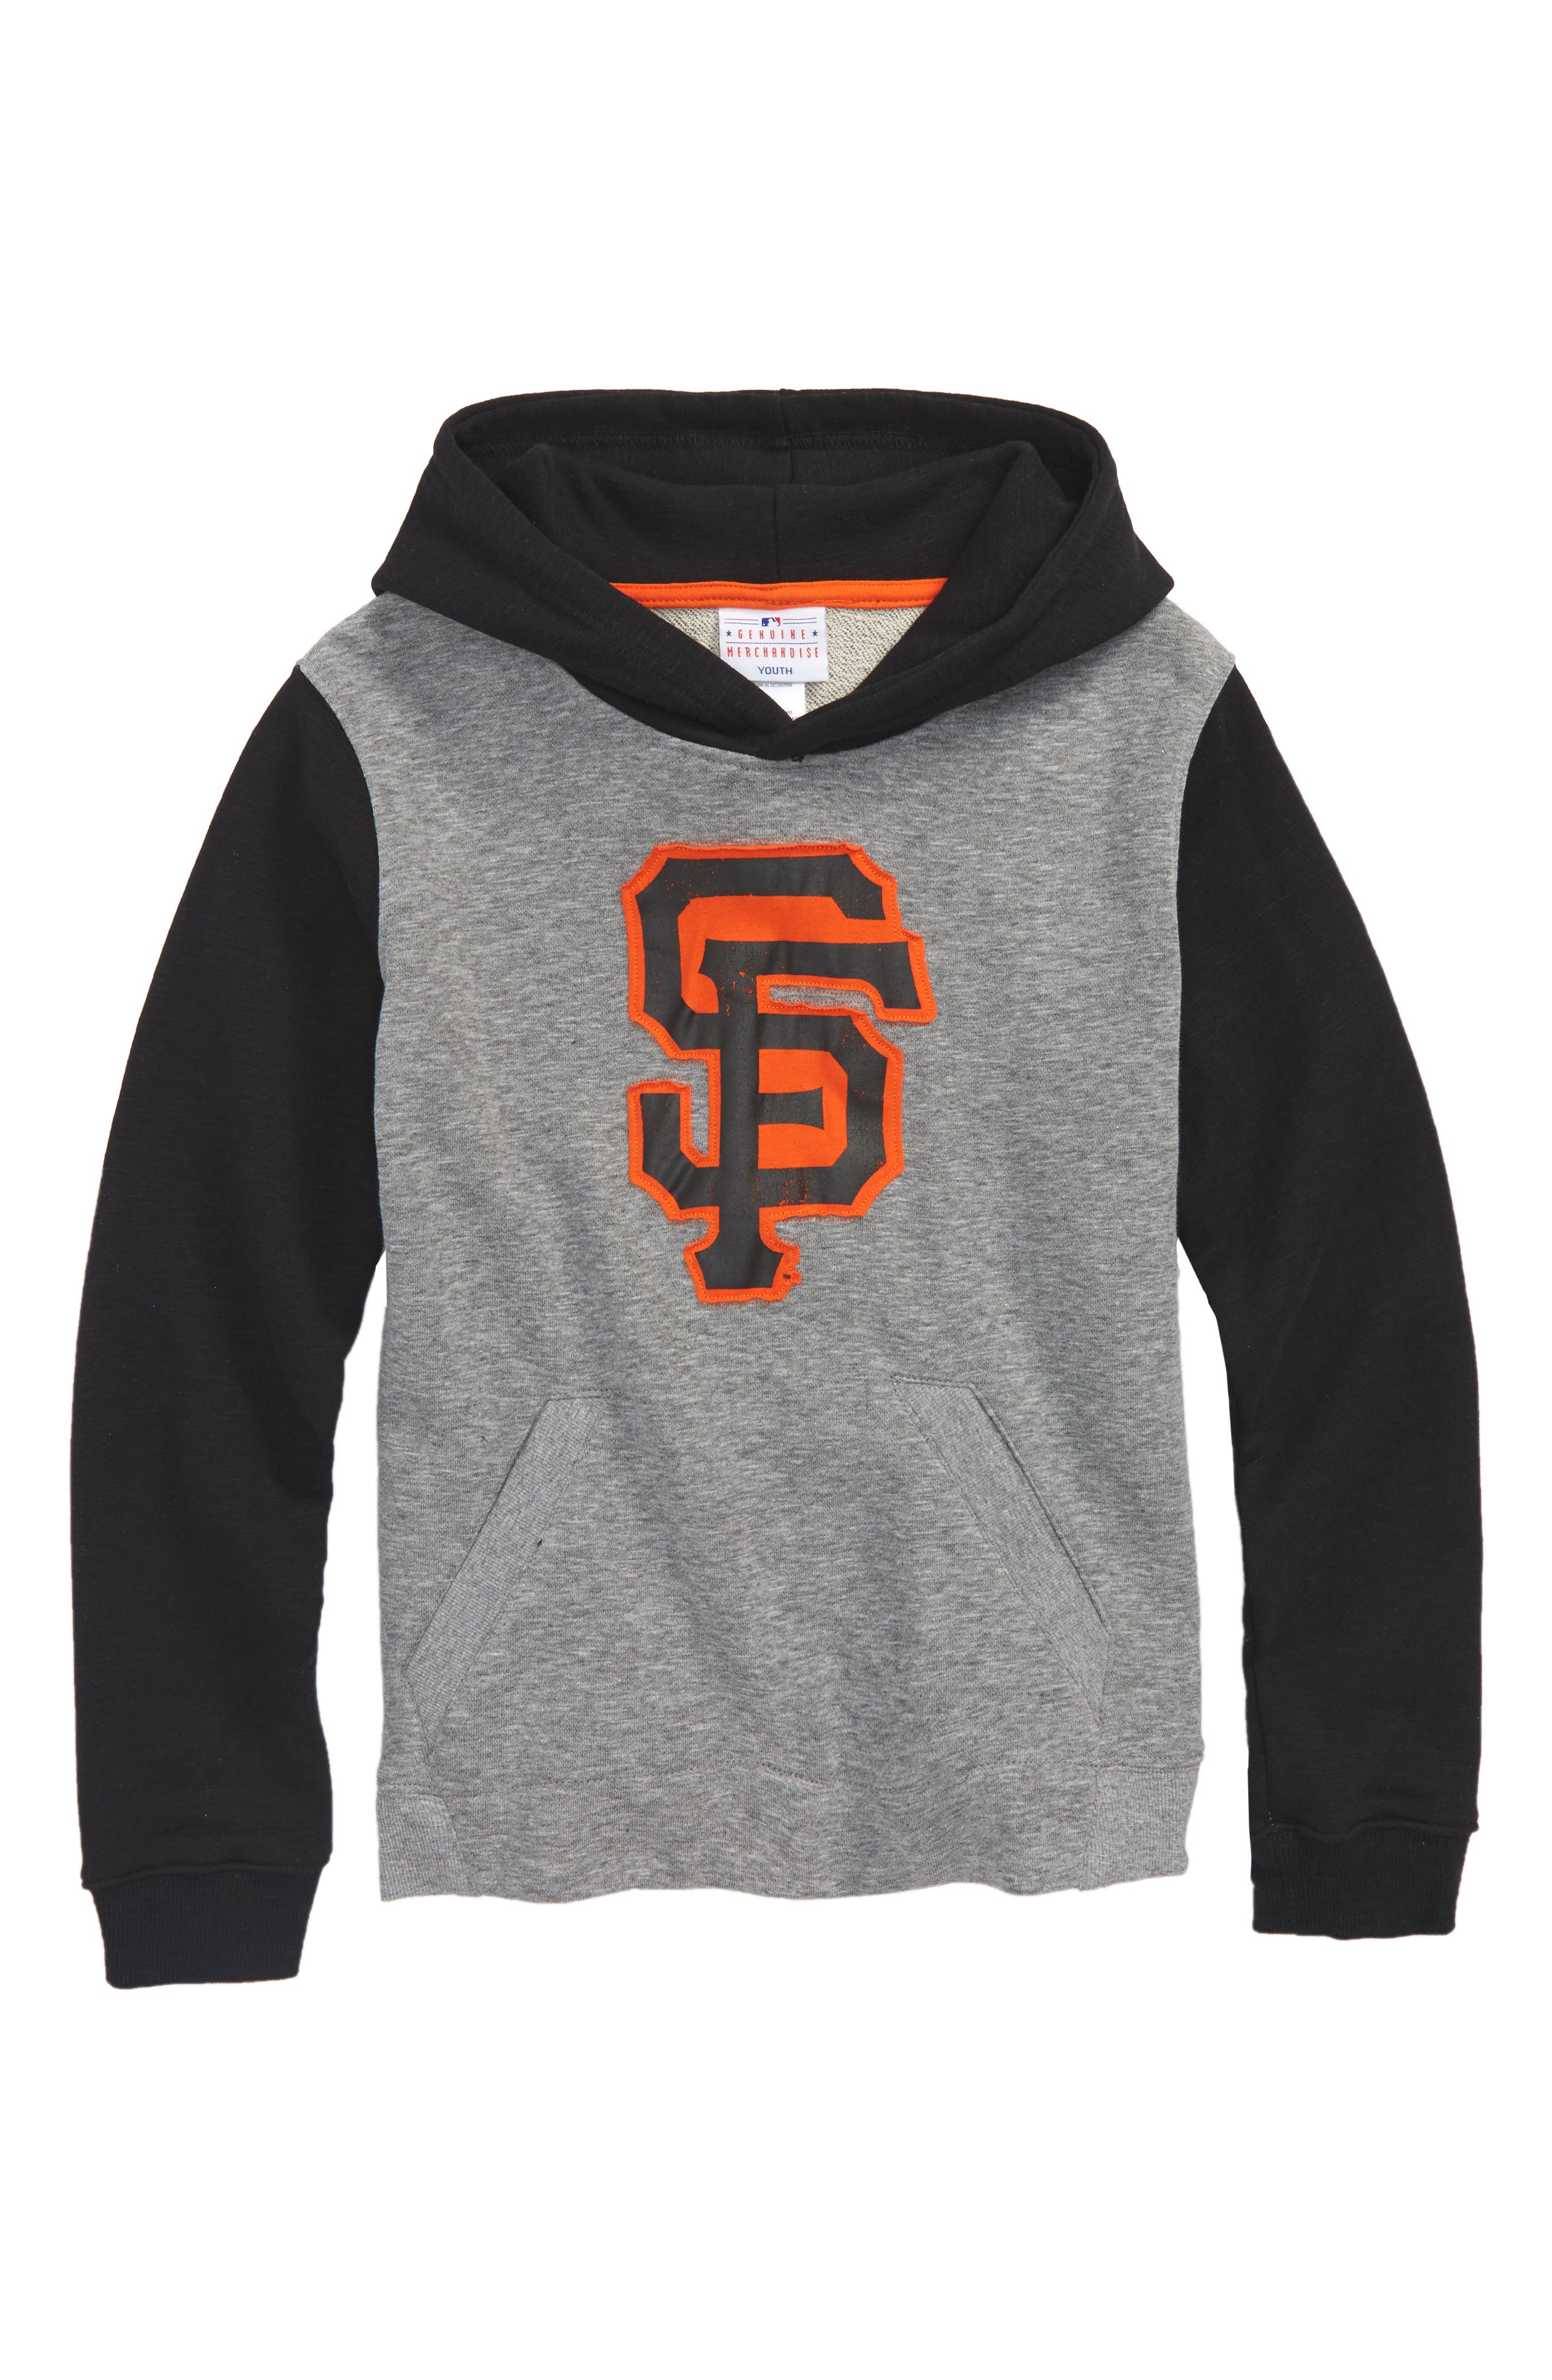 New Beginnings - San Francisco Giants Pullover Hoodie,                             Main thumbnail 1, color,                             Gray